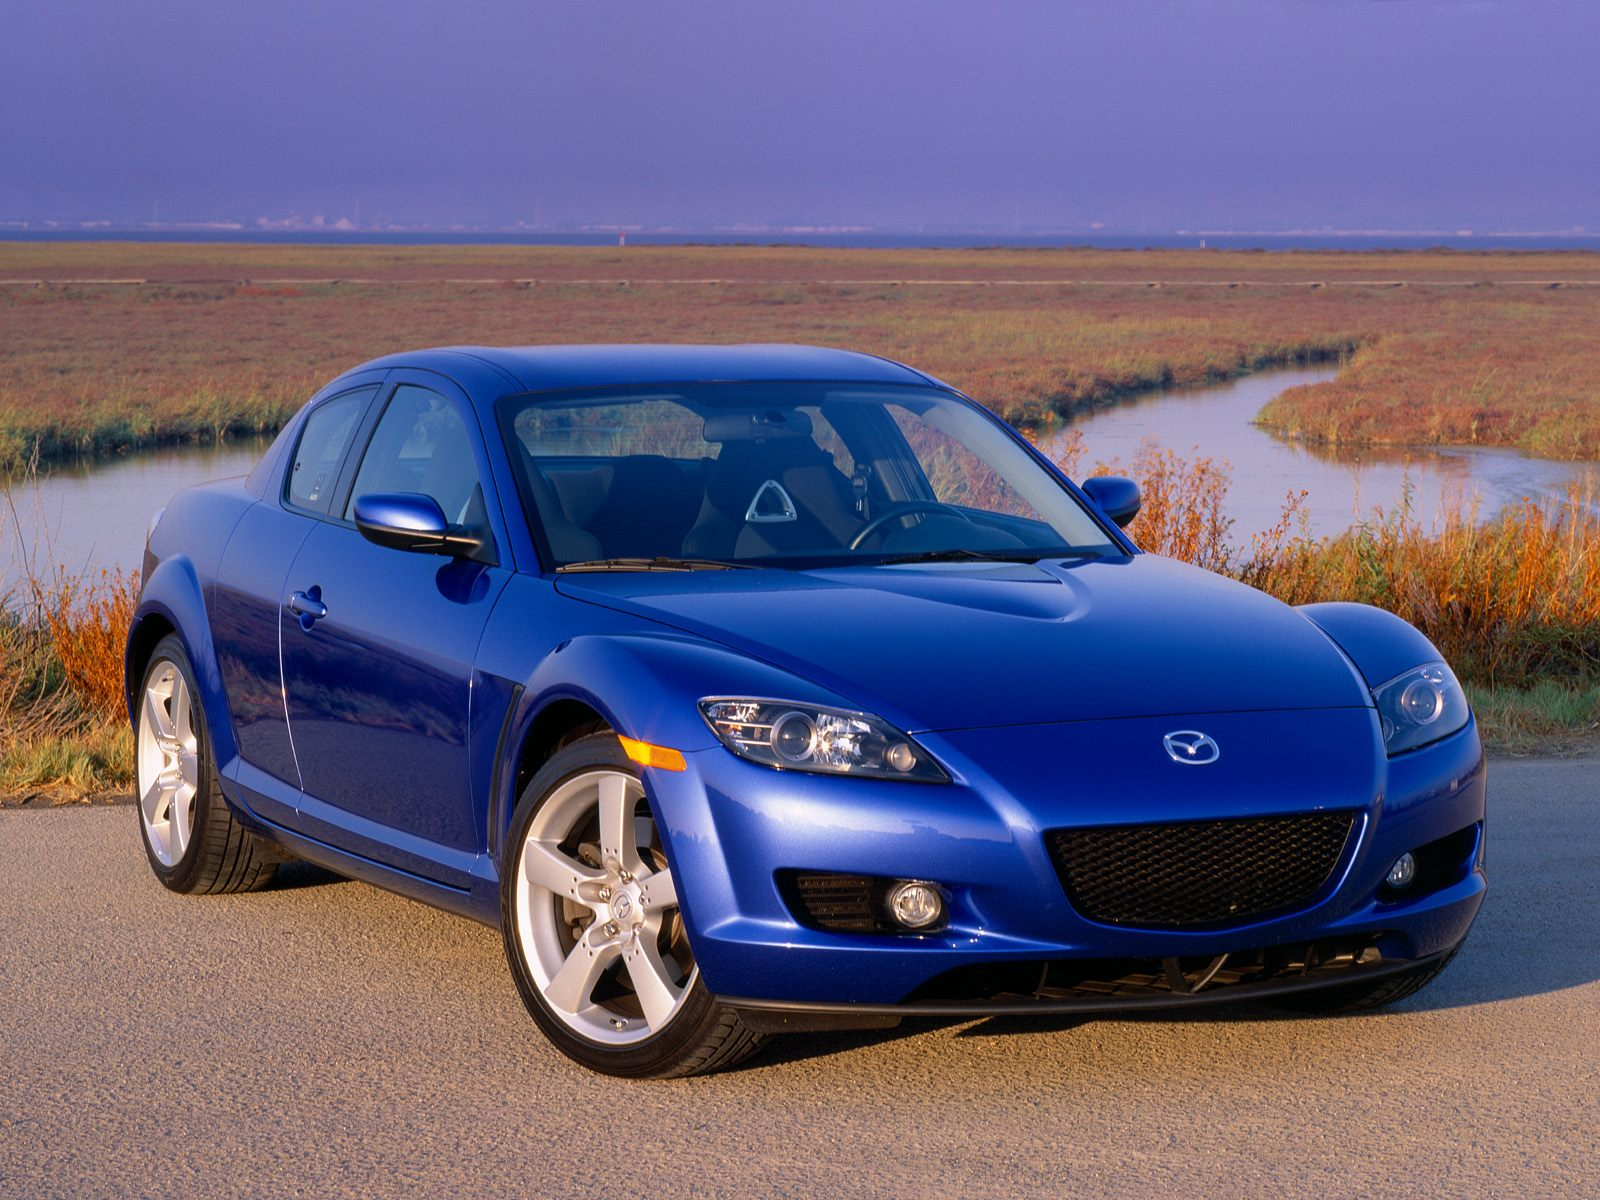 2004 mazda rx 8 photos informations articles. Black Bedroom Furniture Sets. Home Design Ideas